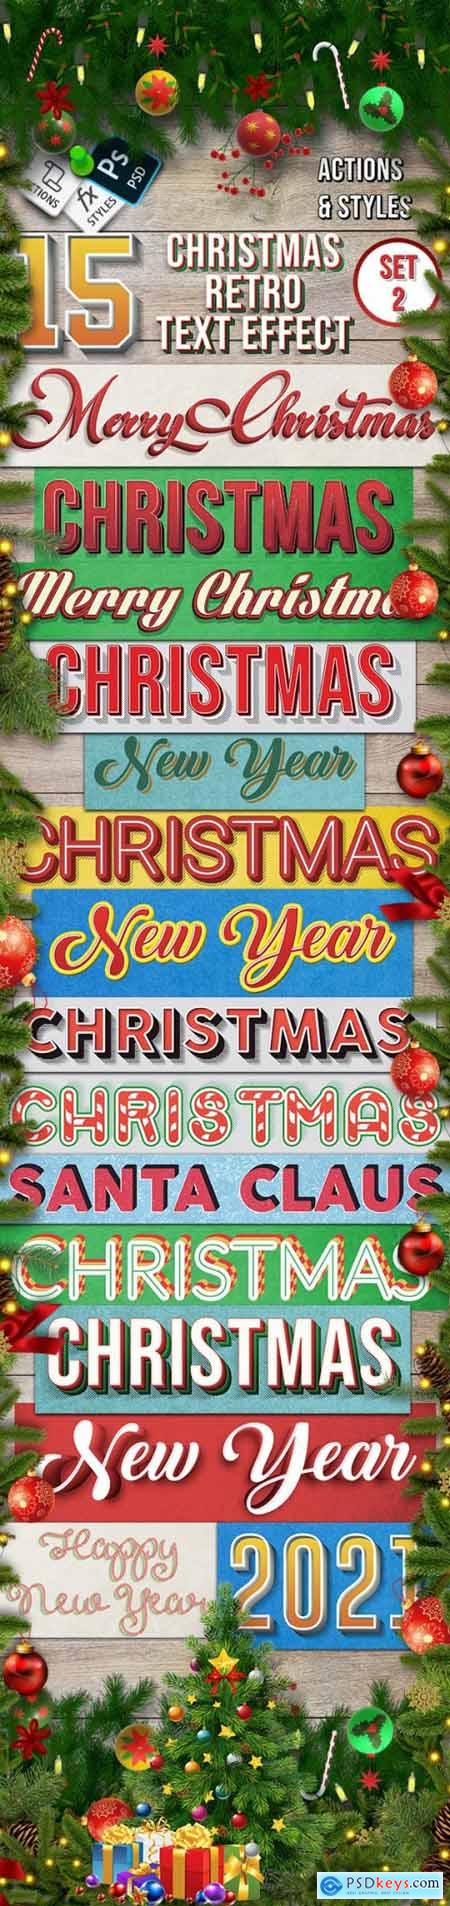 Christmas Retro Text Effect Set 2 - 15 Different Styles 29417802